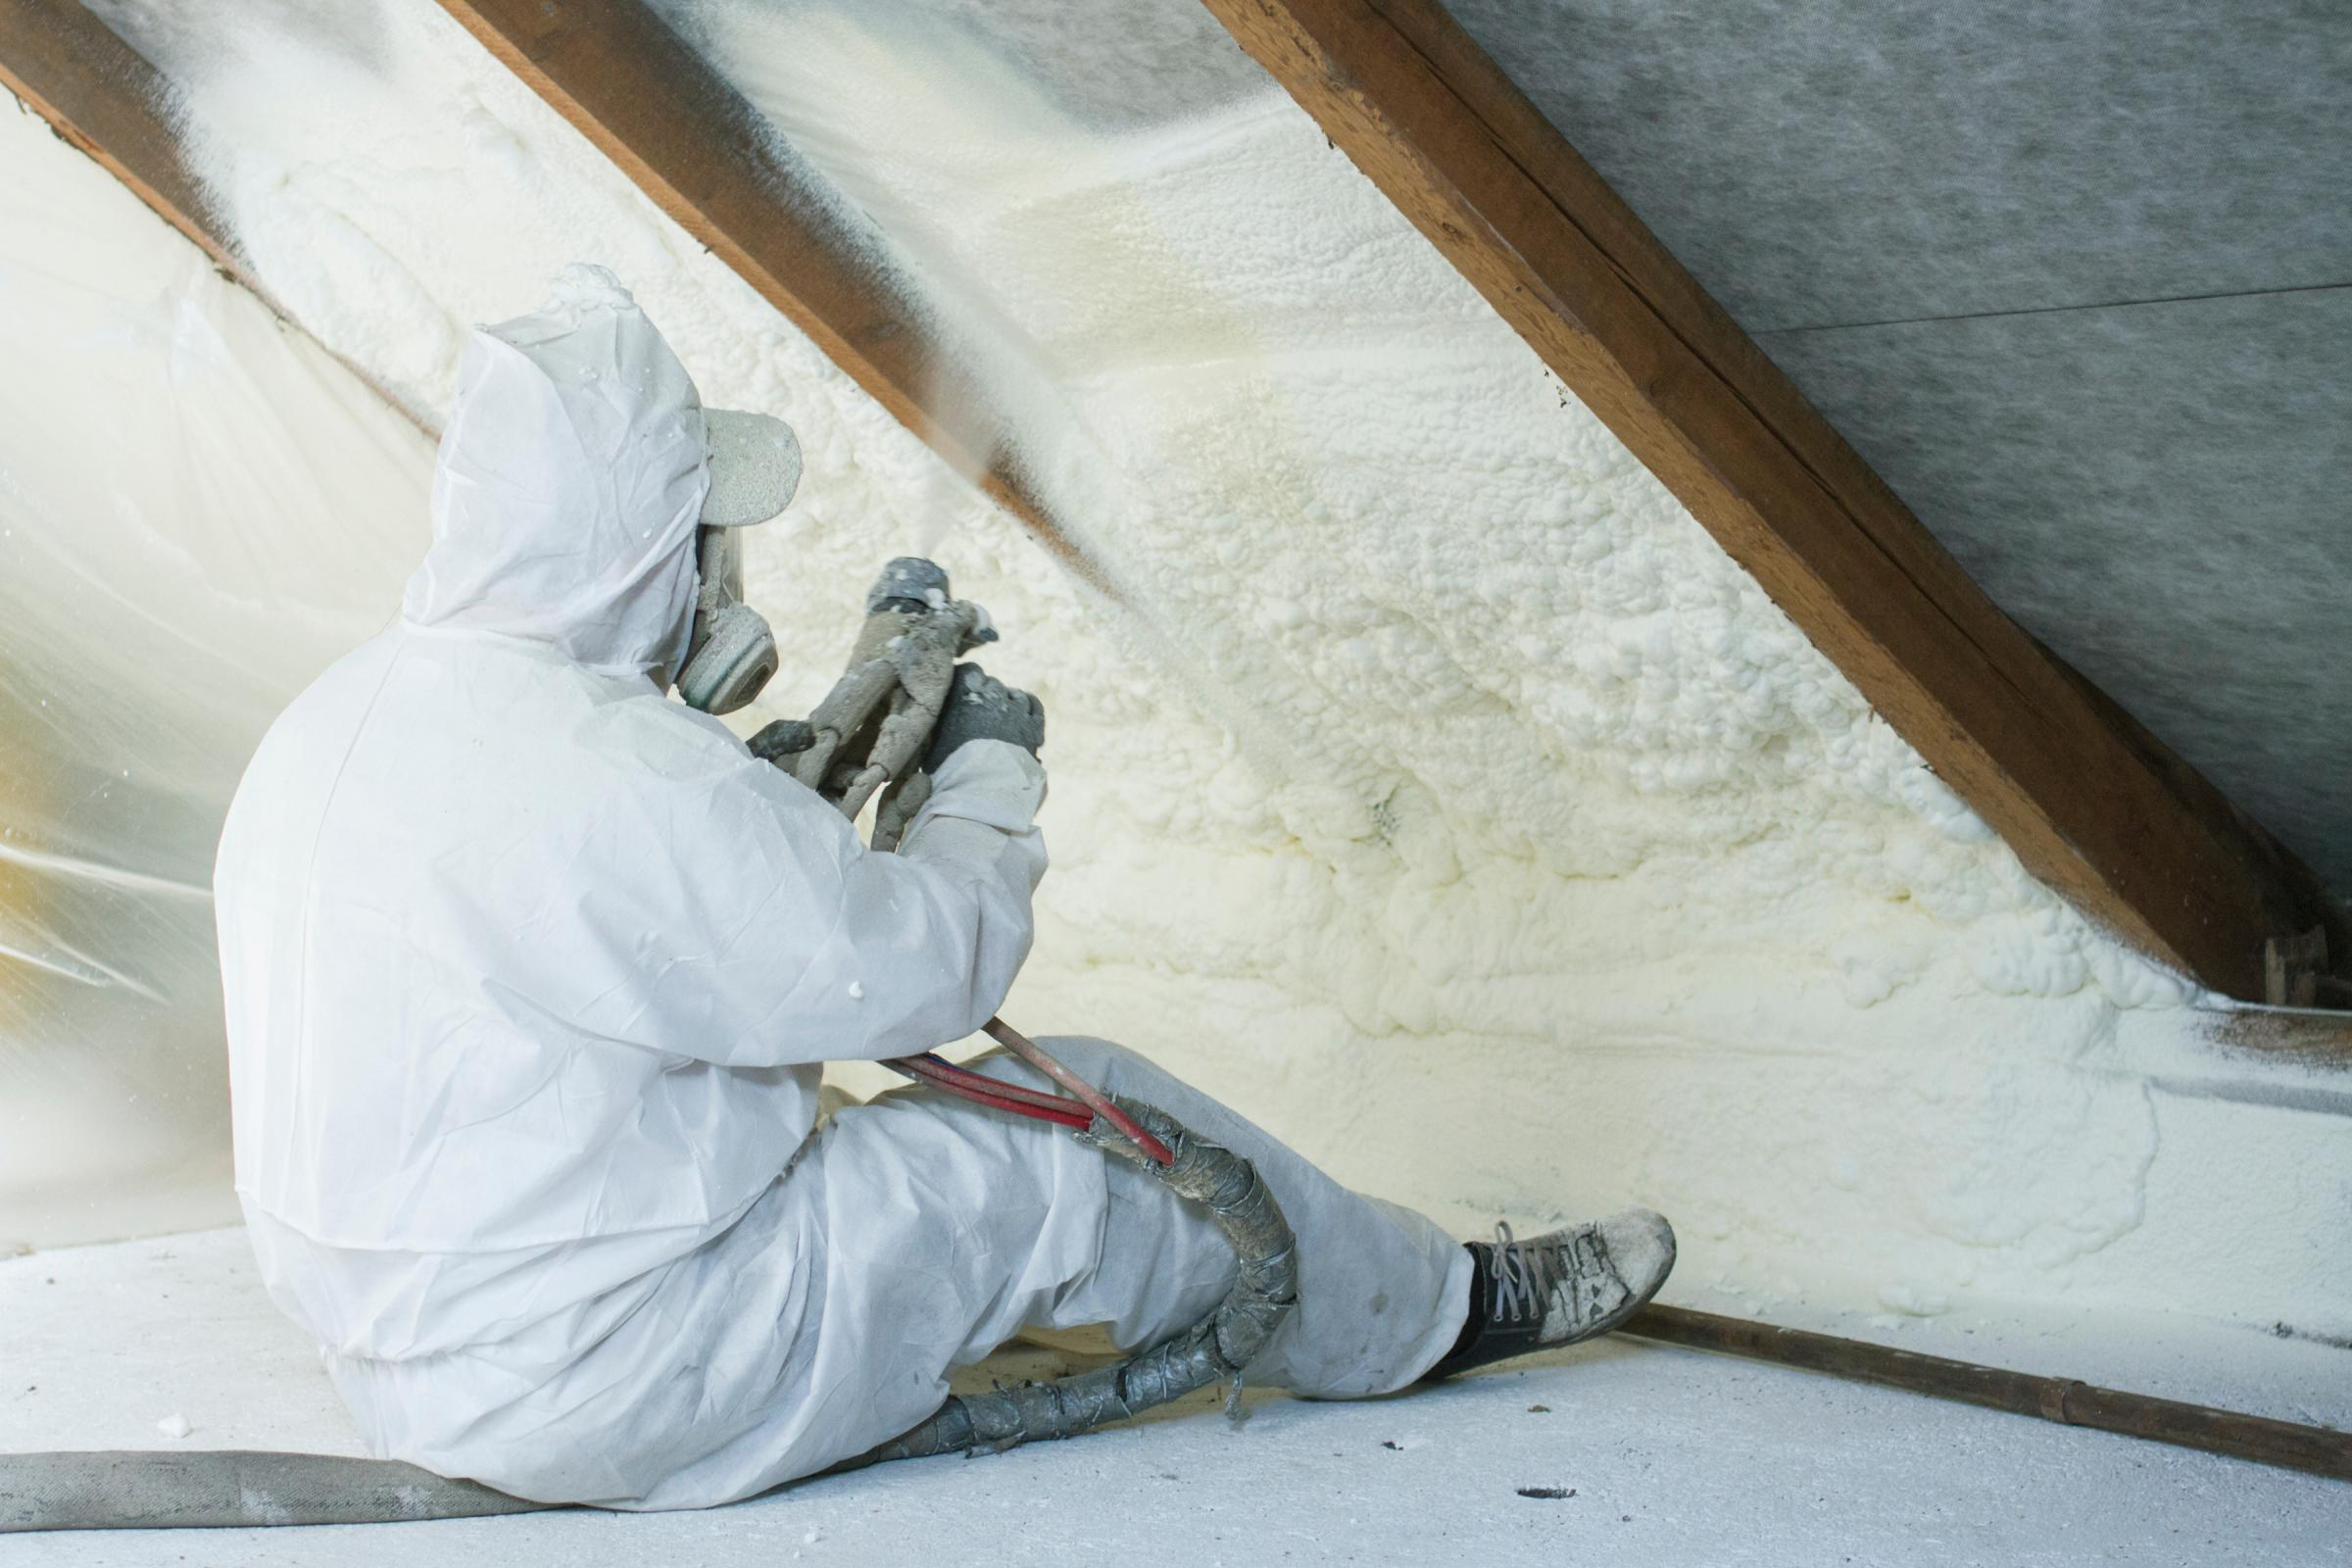 Spray Foam Insulation Being Applied To Attic